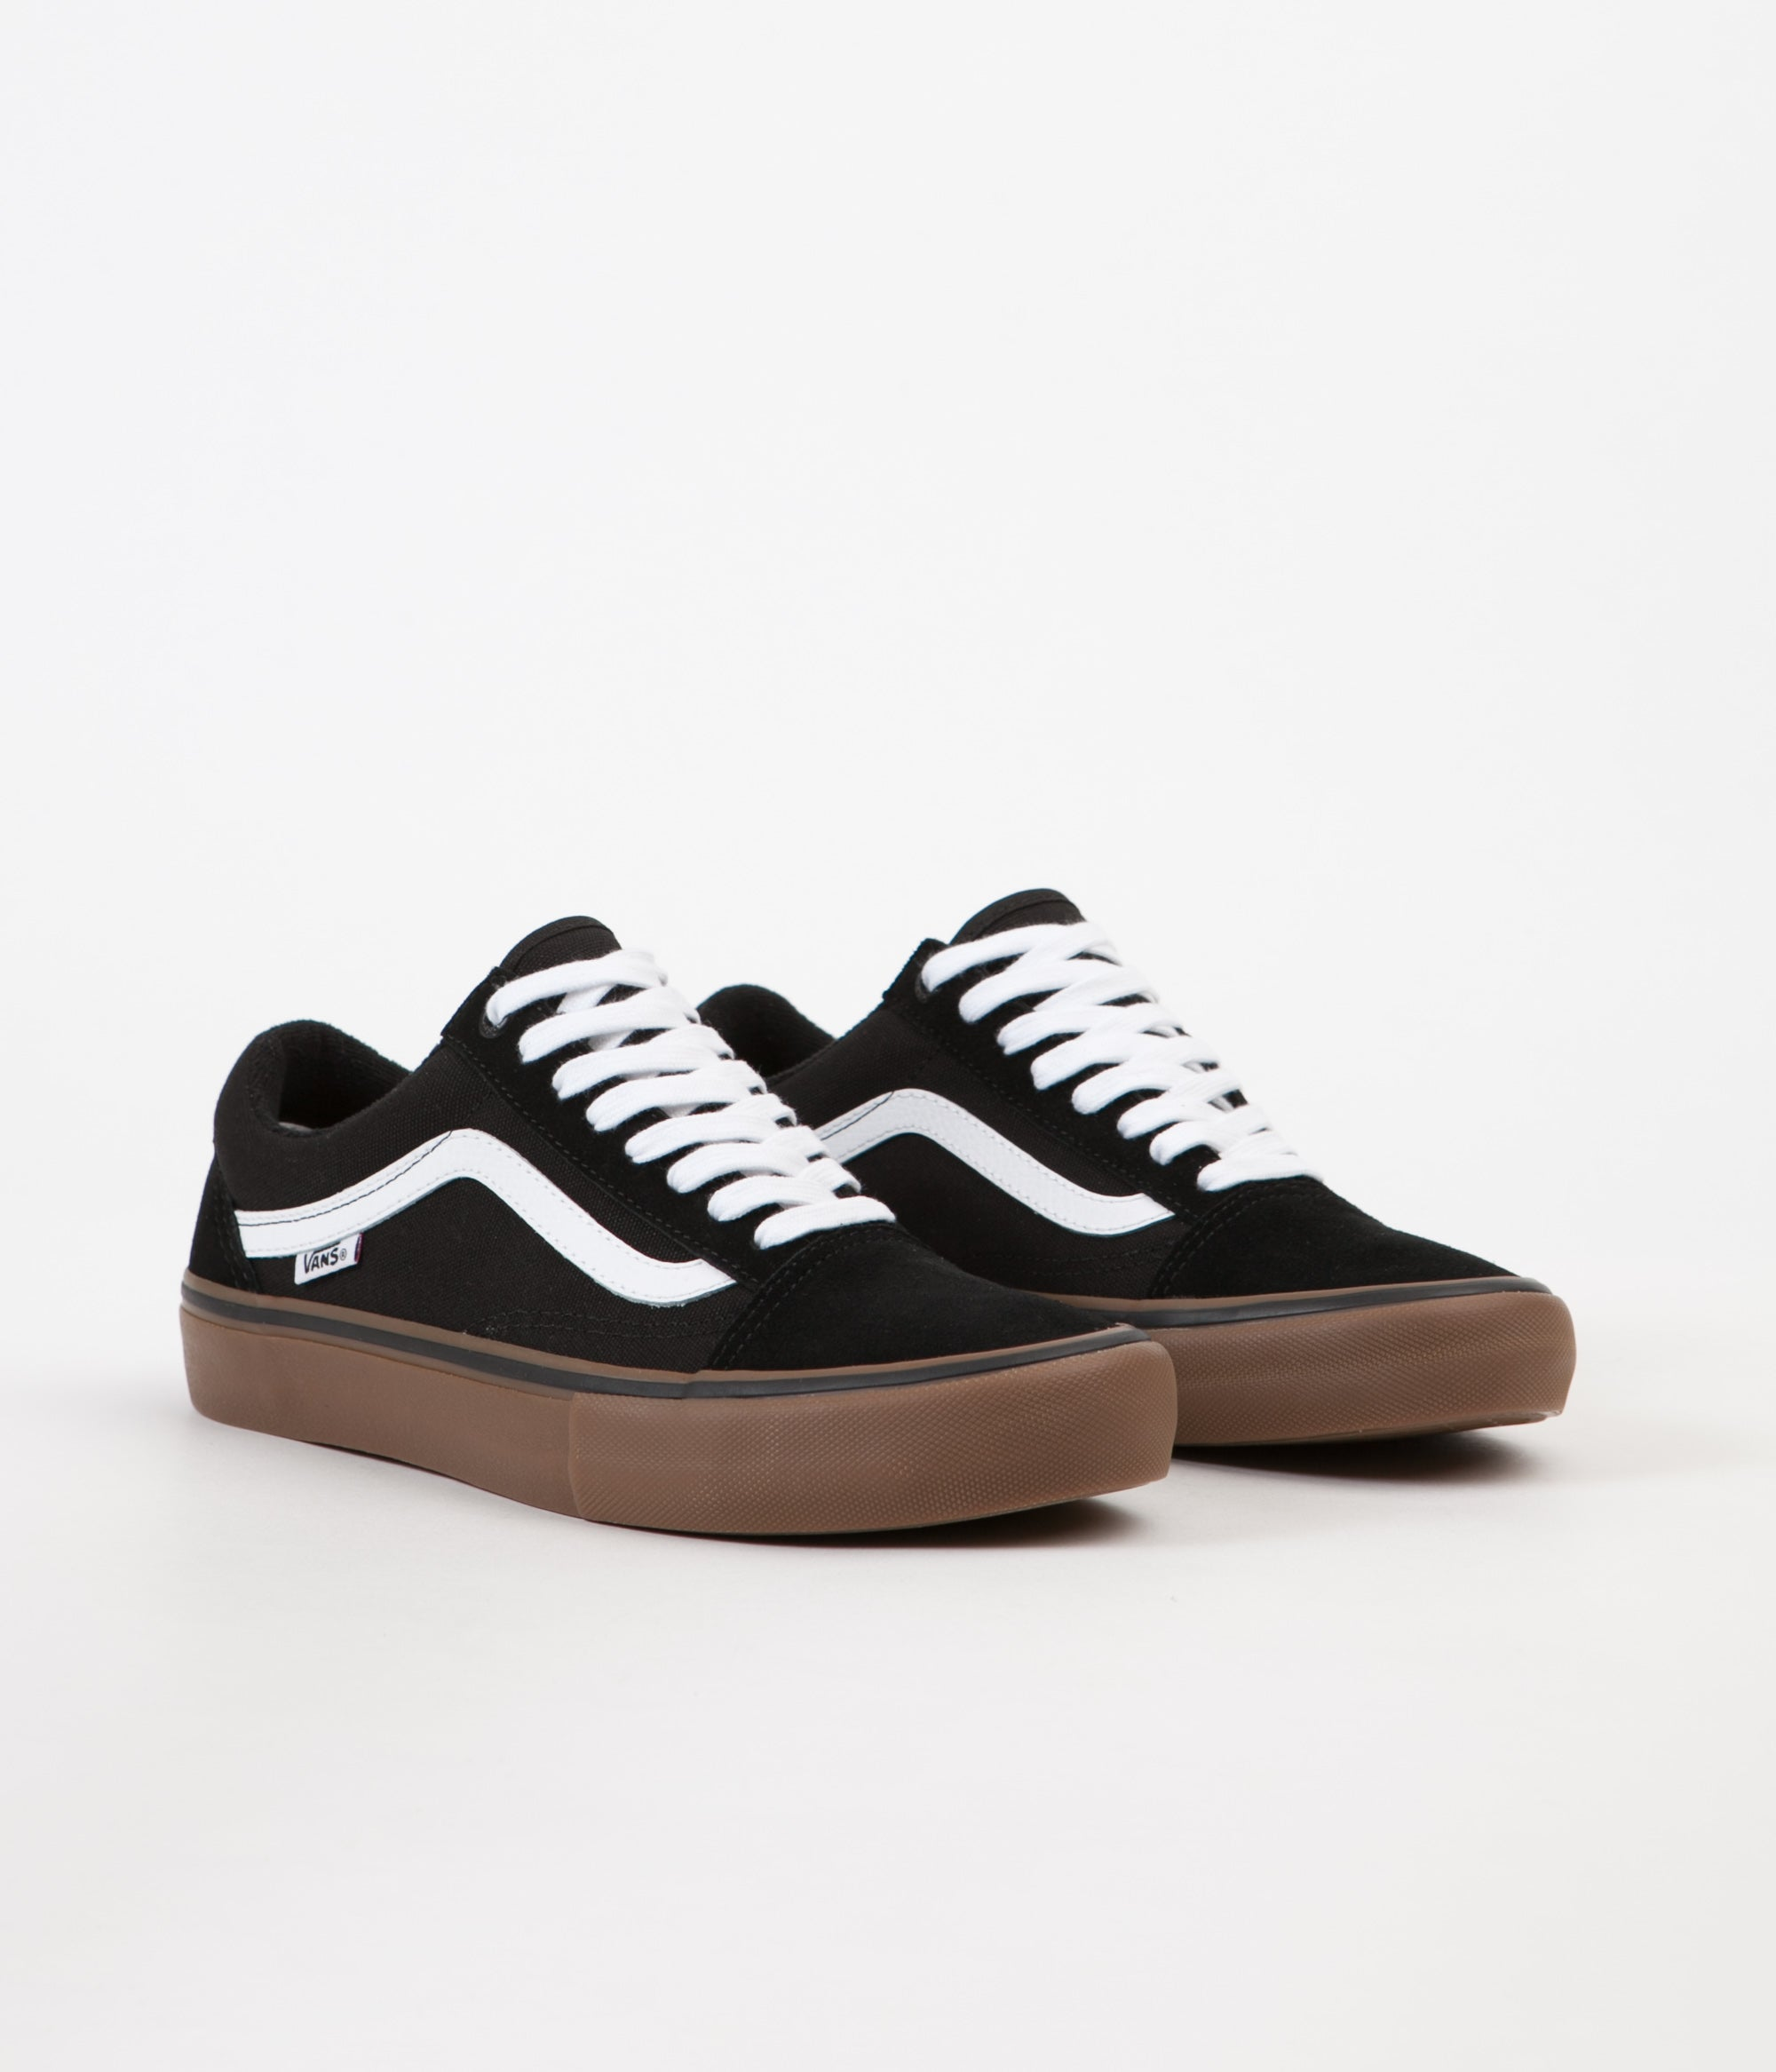 37825cd9f0b ... Vans Old Skool Pro Shoes - Black   White   Medium Gum ...